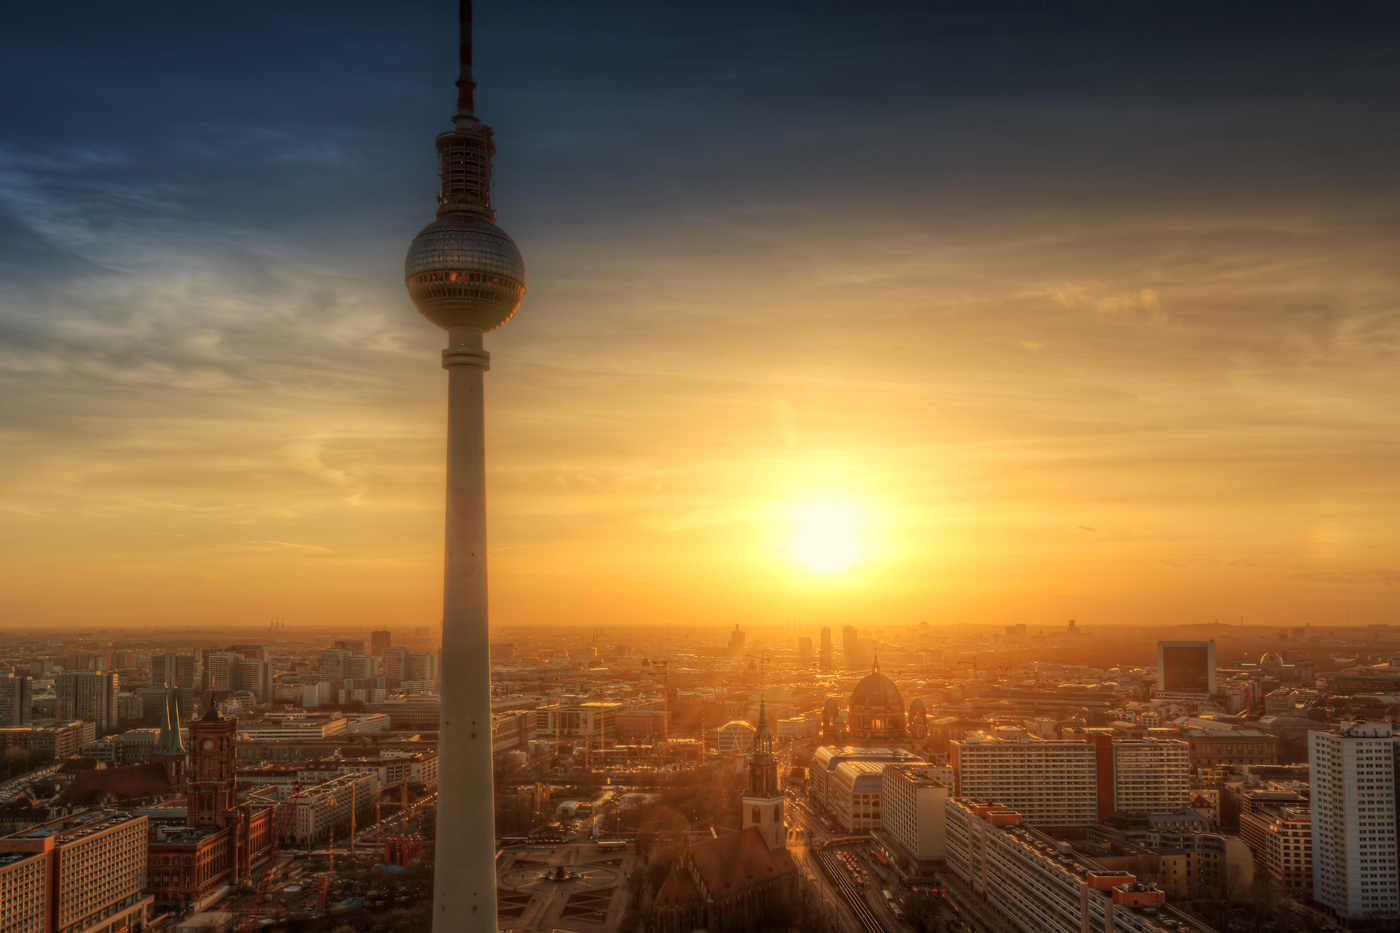 The best View | Berlin, Germany by Nico Trinkhaus